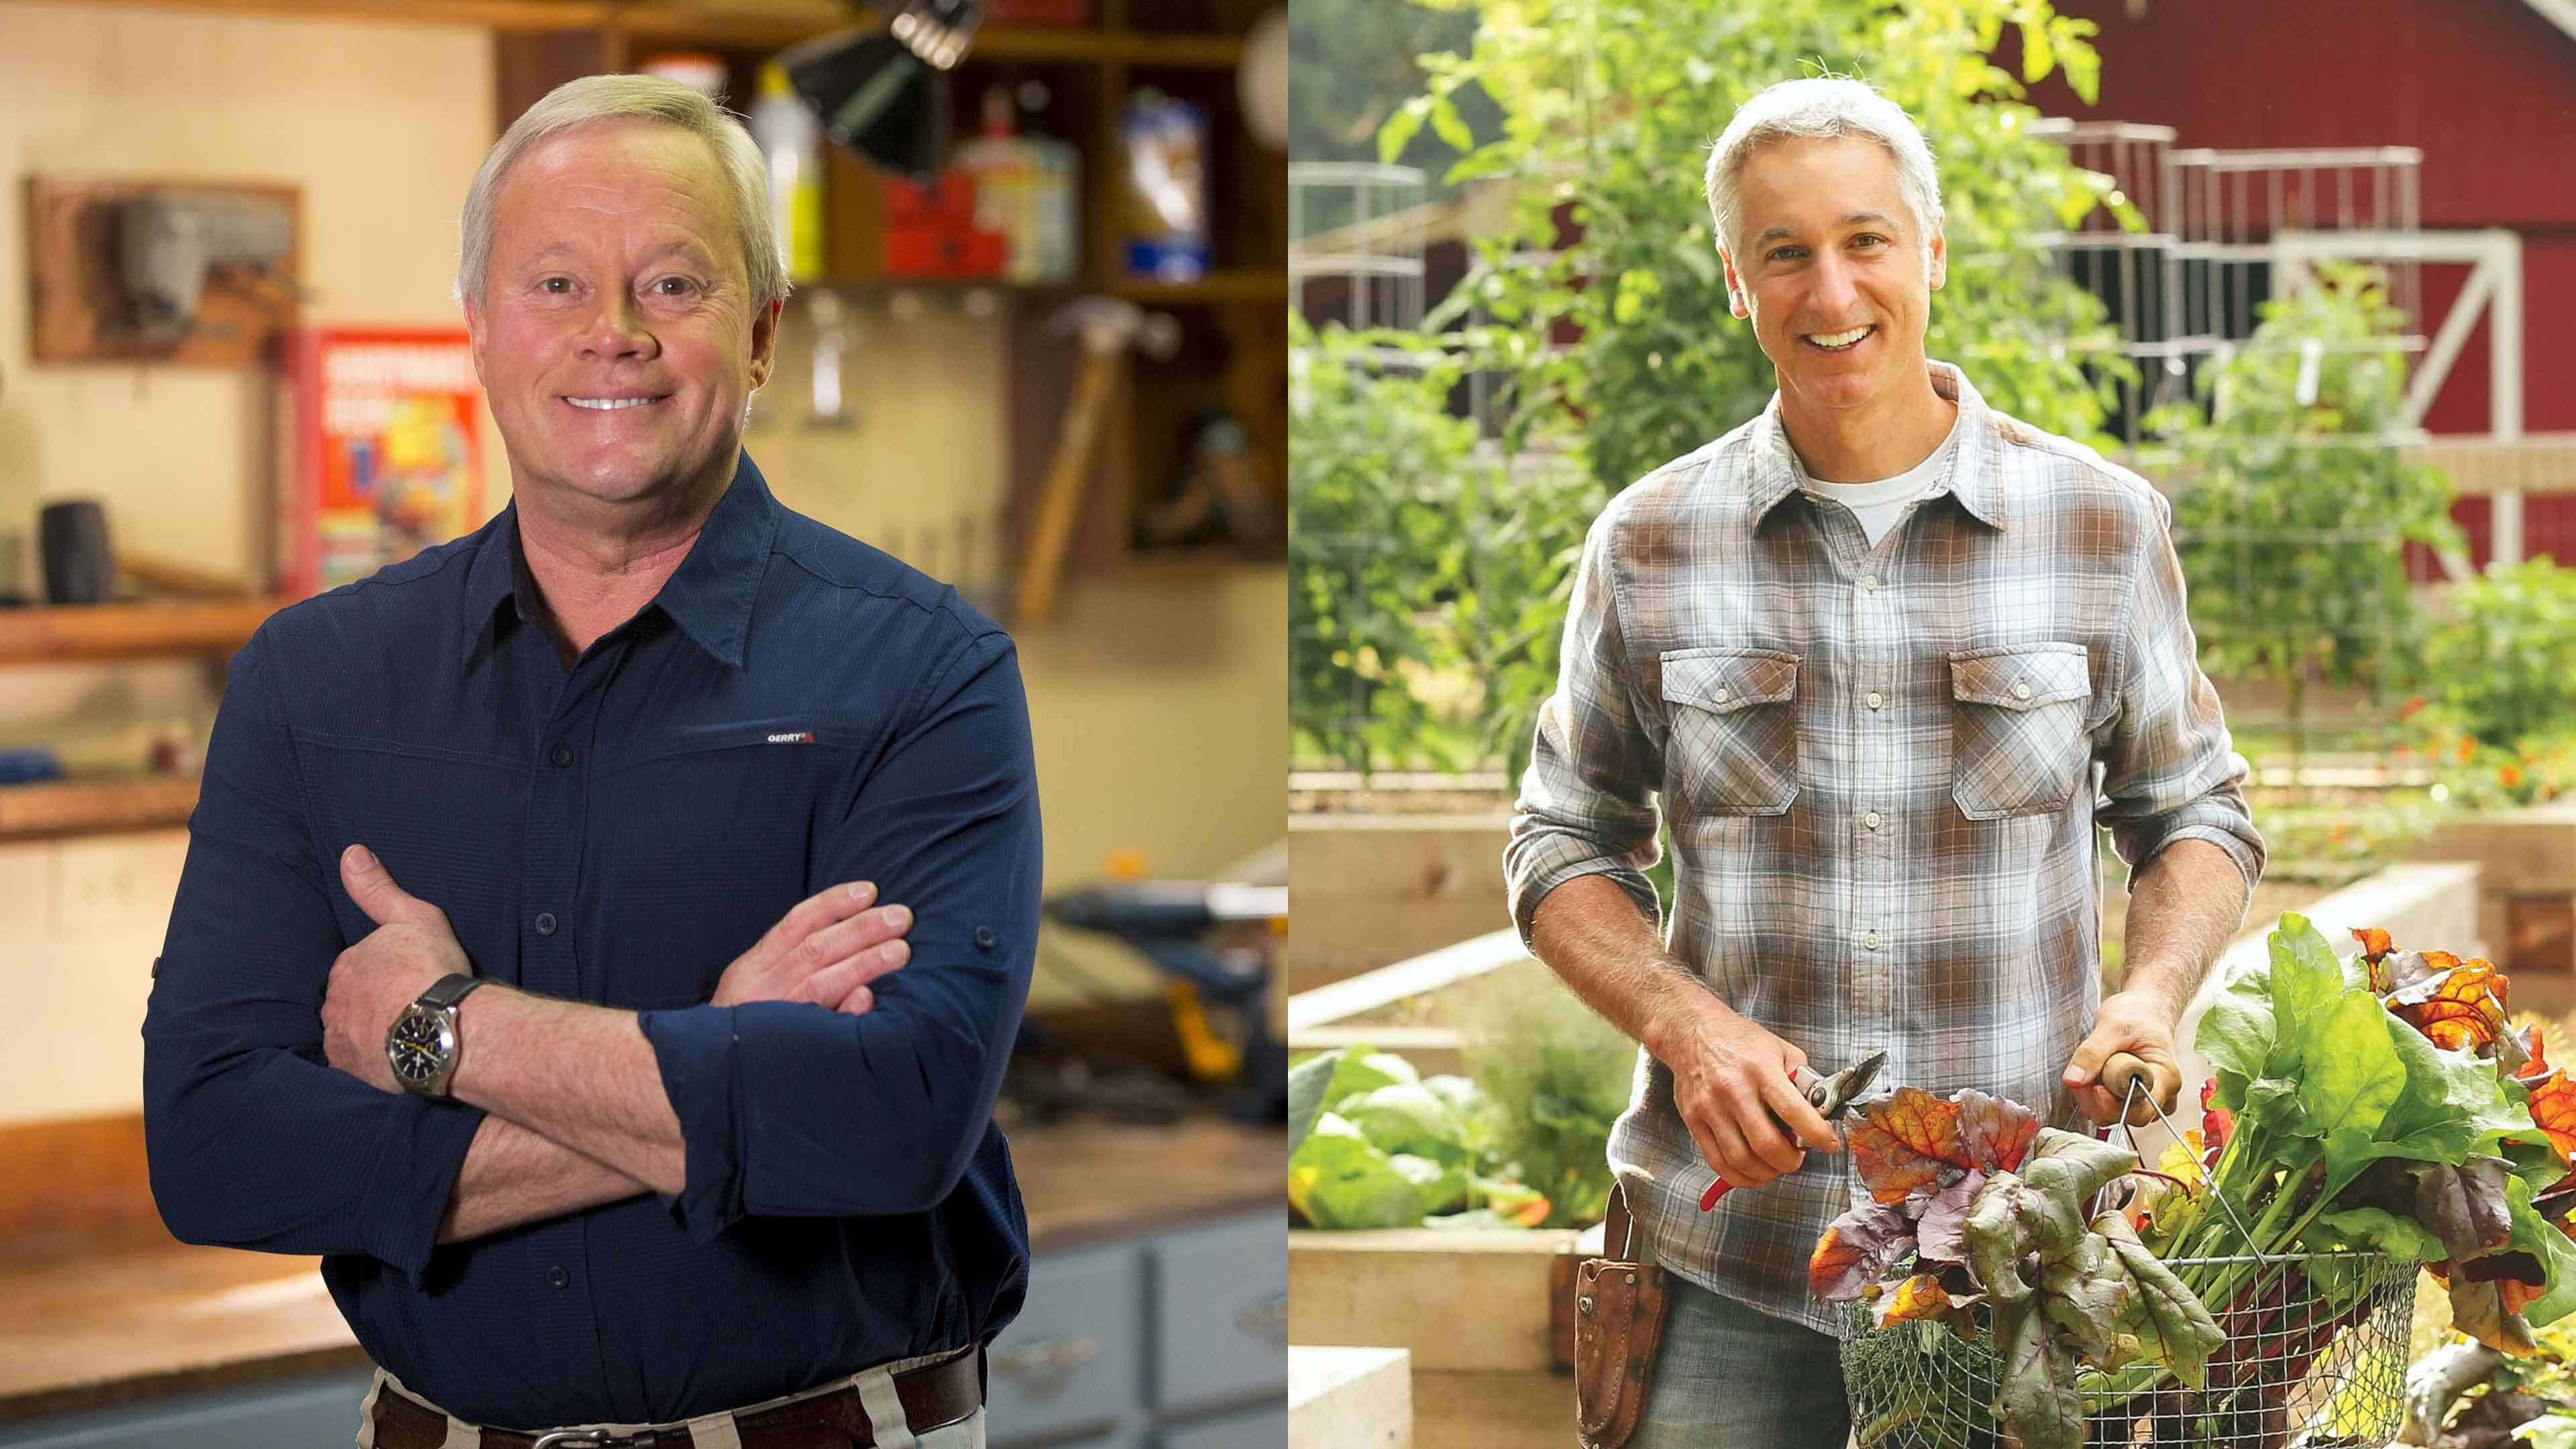 Danny Lipford, host of Today's Homeowner, and Joe Lamp'l, host of Growing a Greener World, offer fall gardening tips